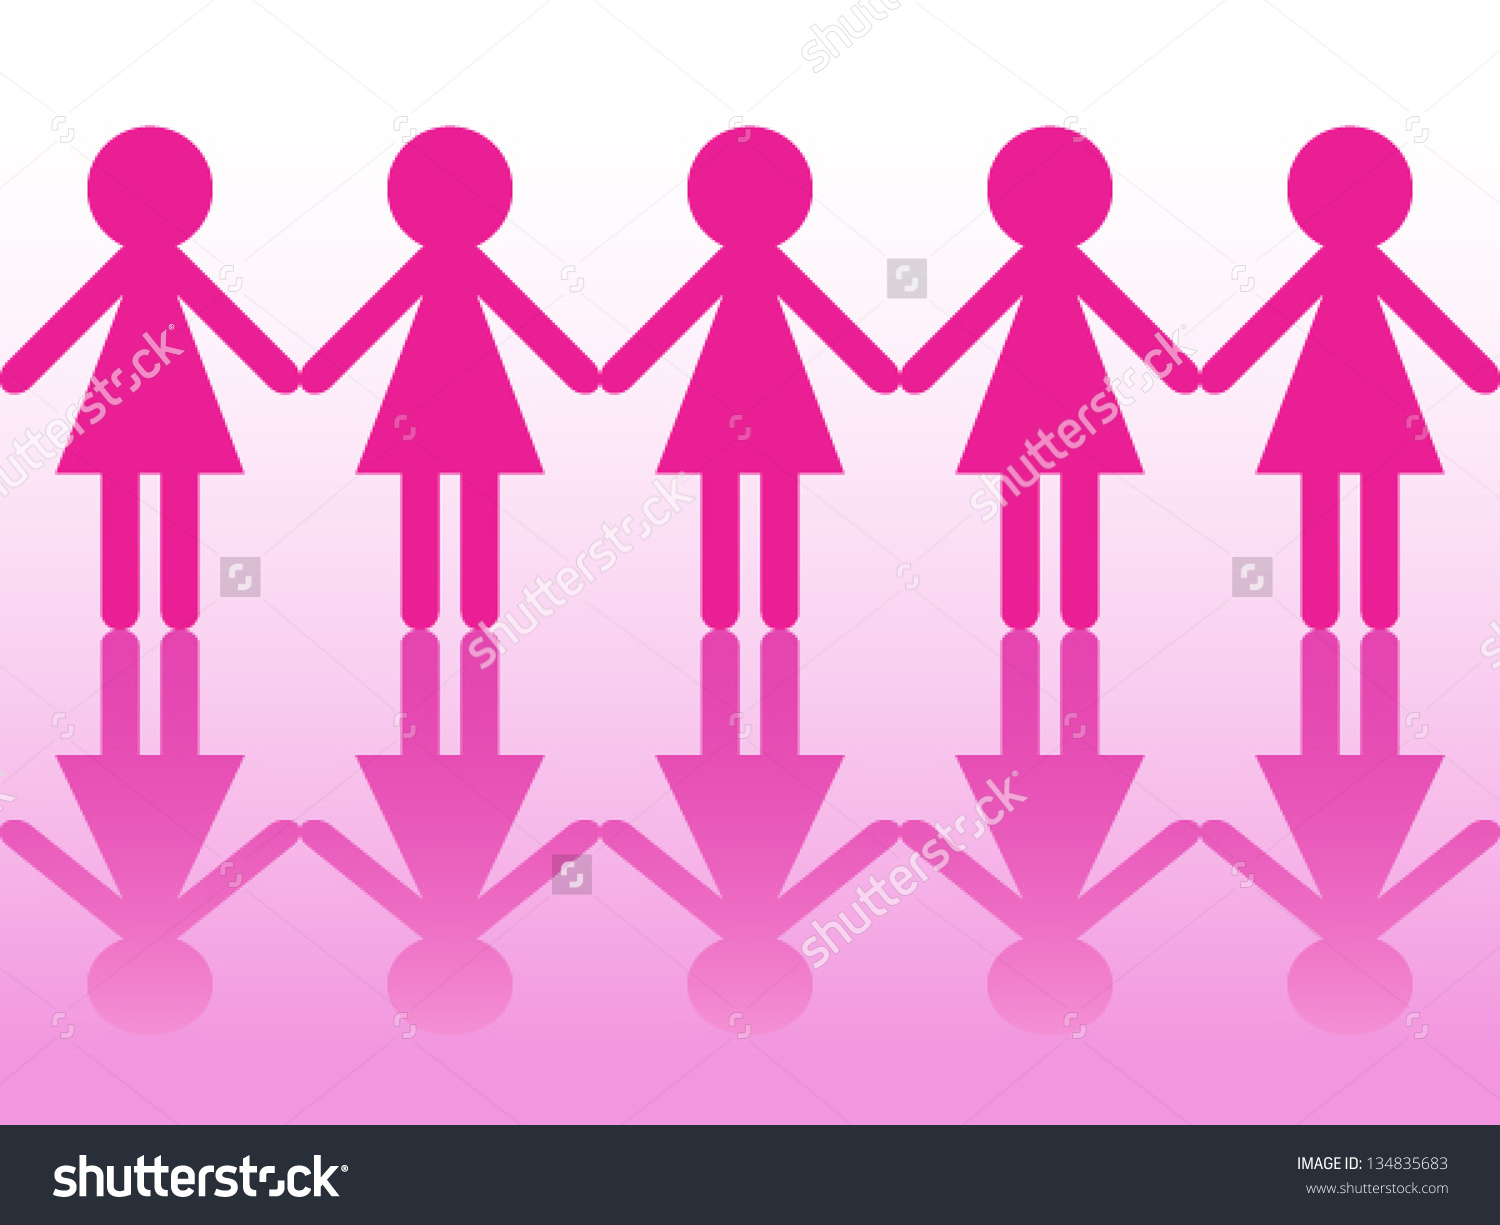 Seamless Row Women Silhouettes Holding Hands Stock Vector.